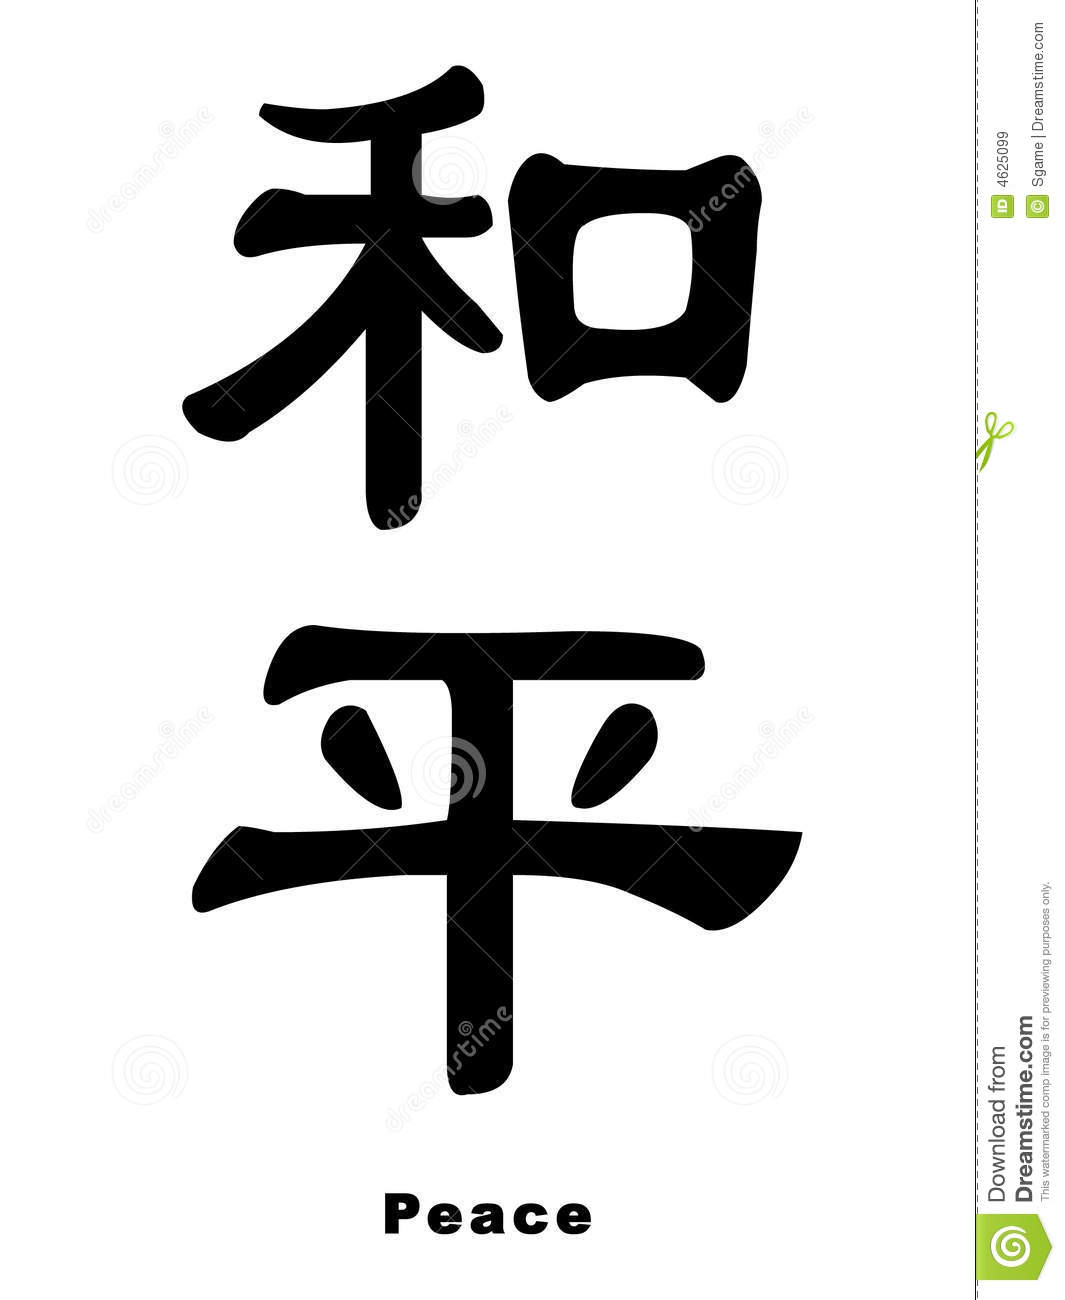 Chinese symbols peace image collections symbols and meanings peace and love chinese symbols biocorpaavc biocorpaavc Images